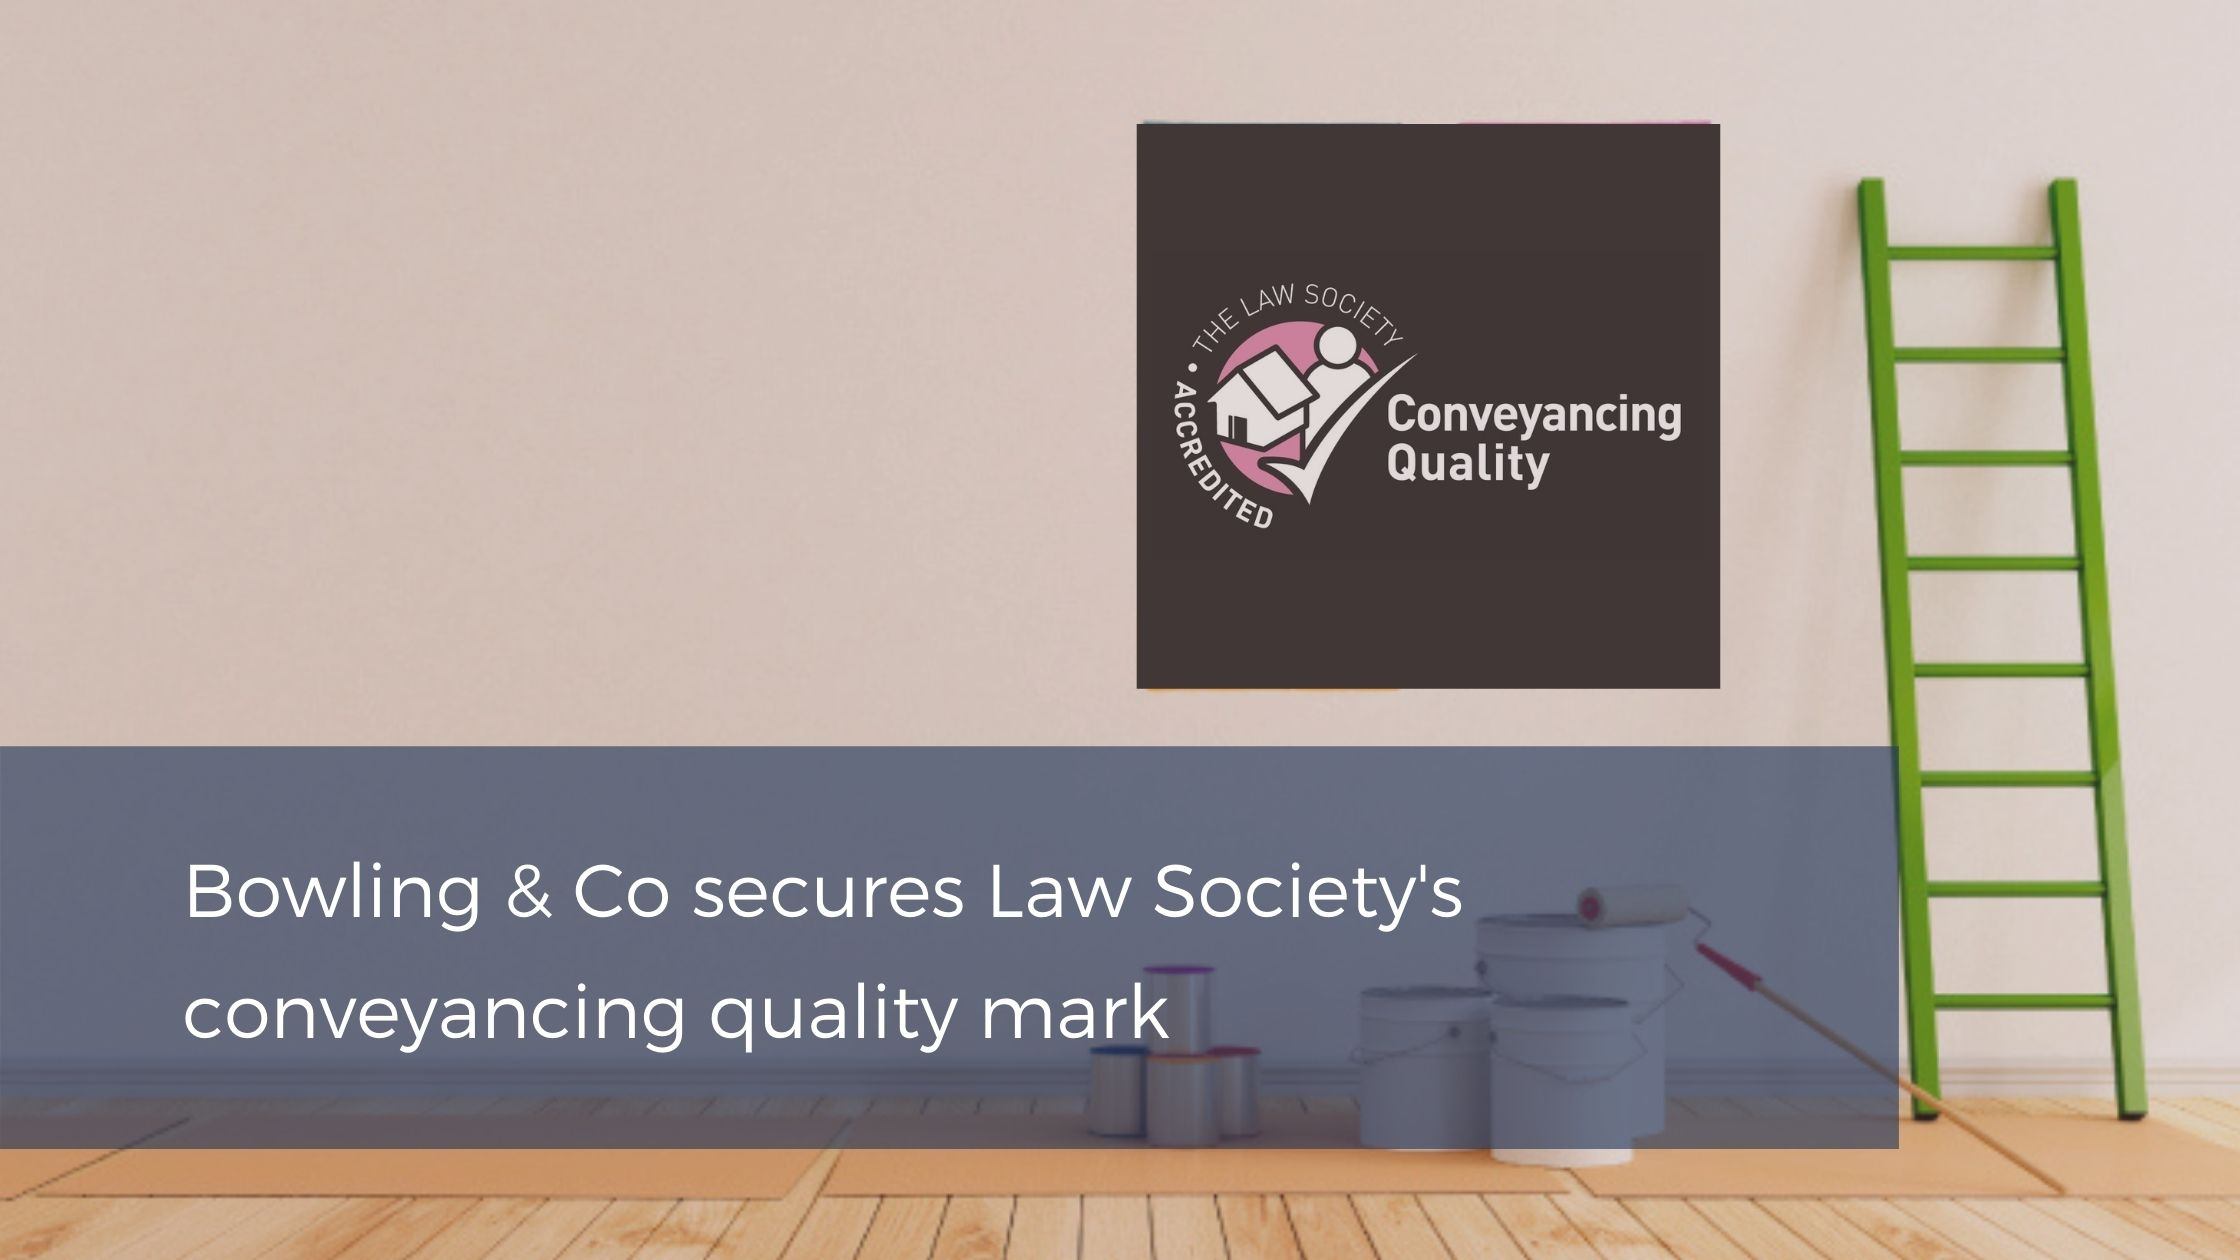 Bowling & Co secures Law Society's conveyancing quality mark